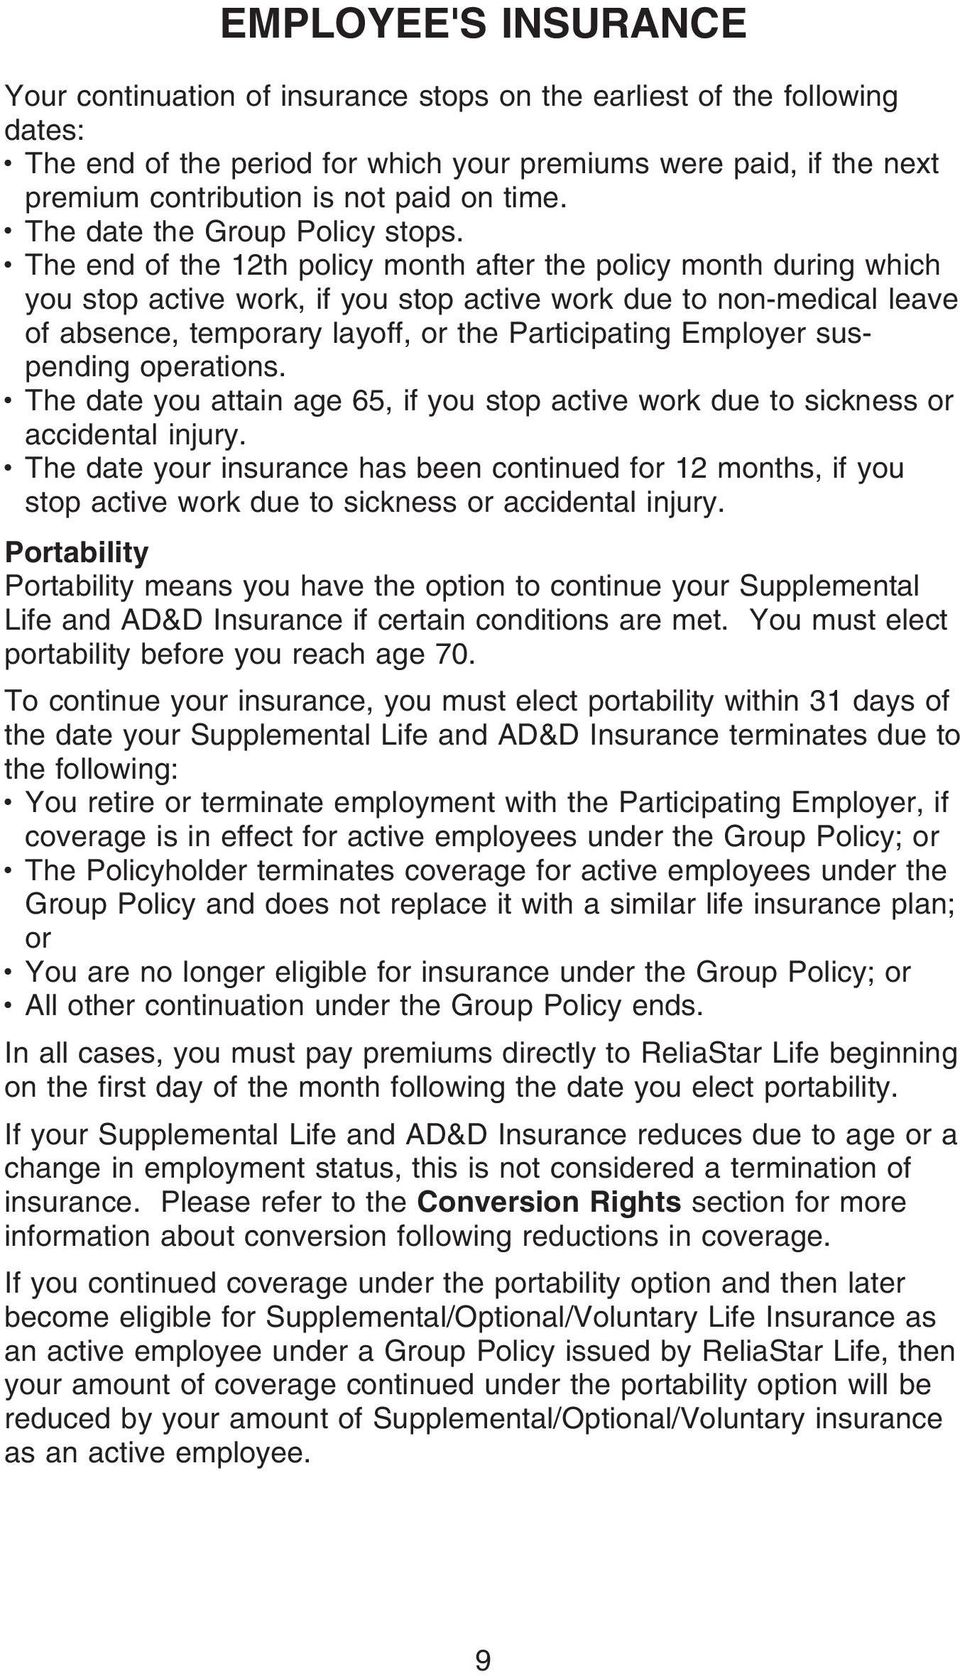 The end of the 12th policy month after the policy month during which you stop active work, if you stop active work due to non-medical leave of absence, temporary layoff, or the Participating Employer